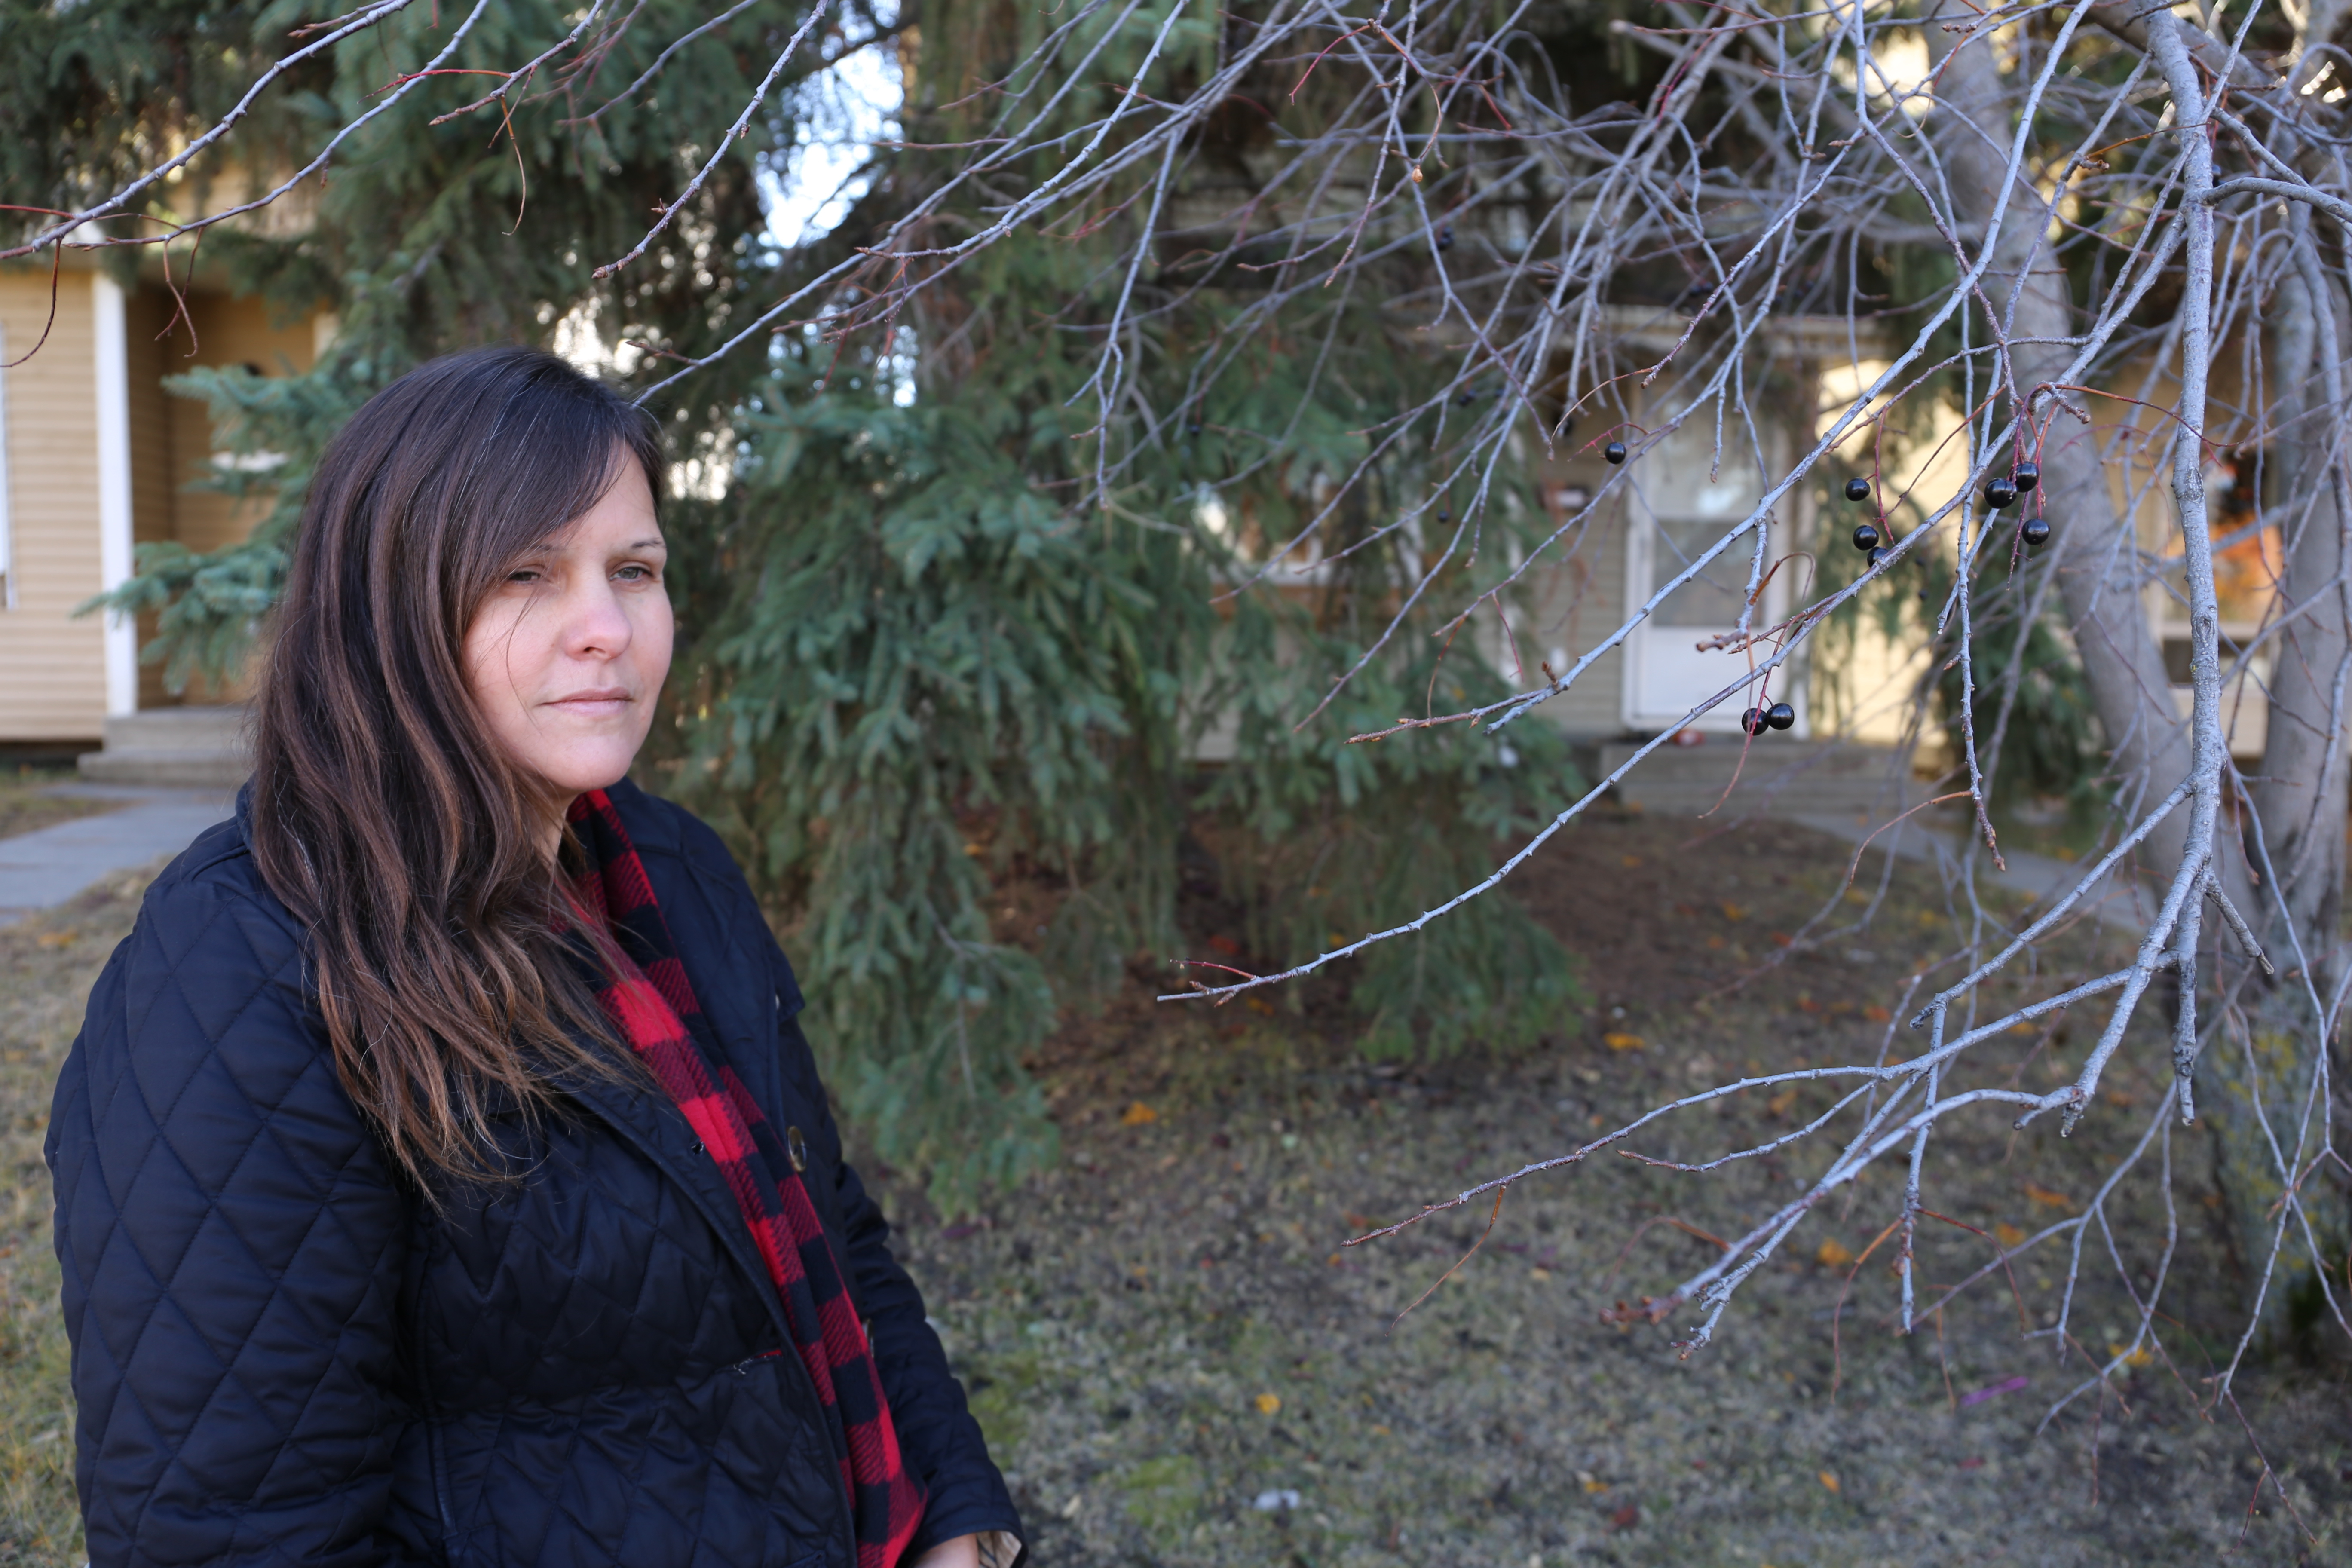 Hailey Mills revisited the home she lived in for 17 years on Oct. 19 for the first time since she moved out.